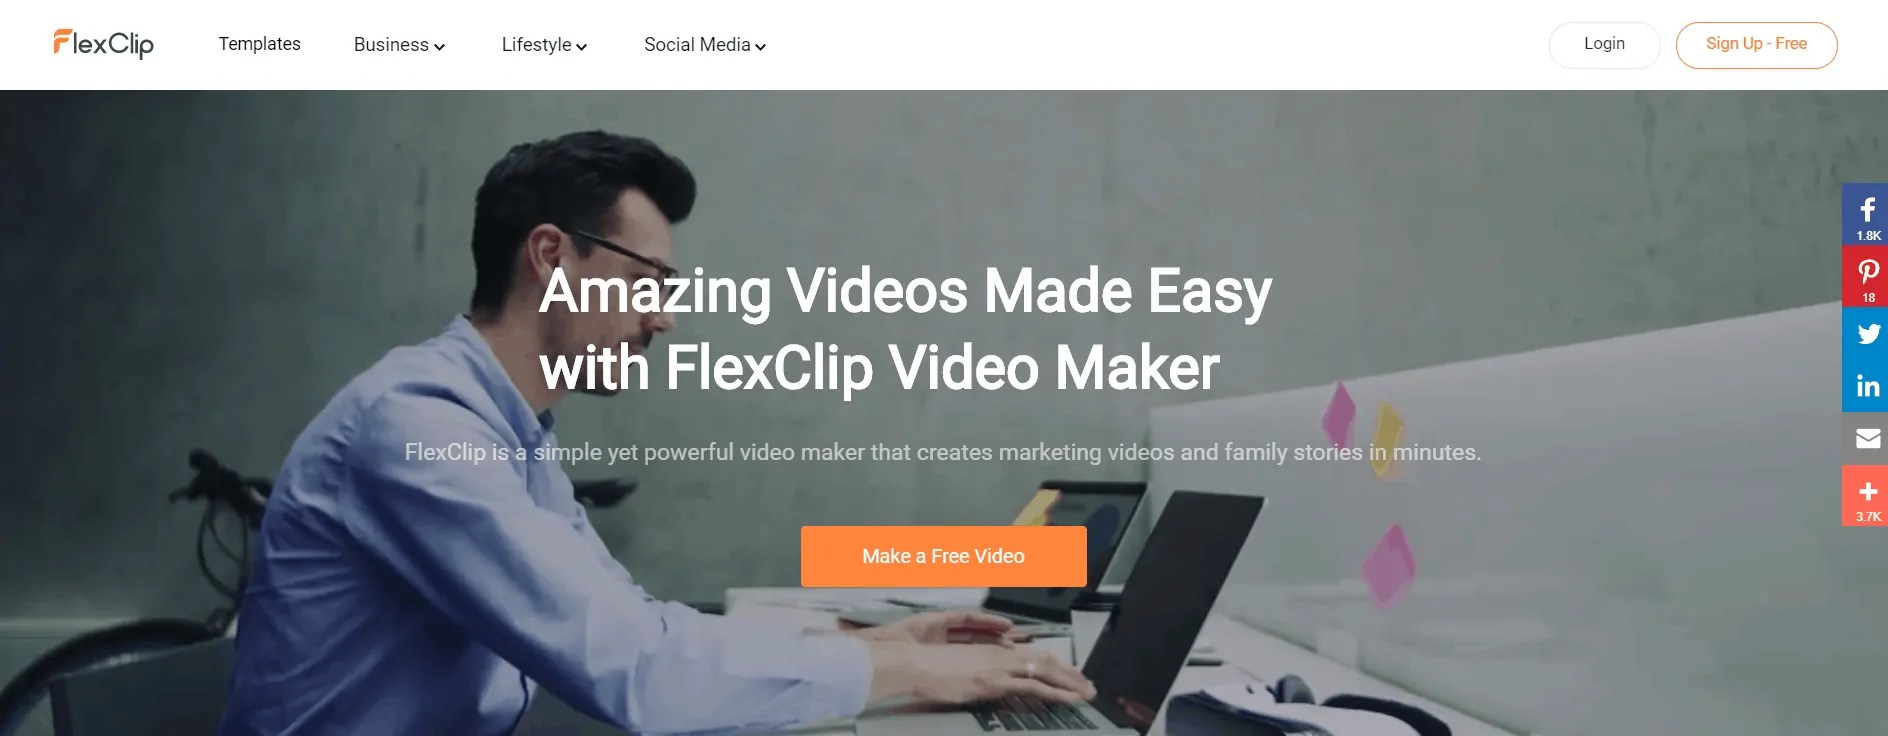 FlexClip Video Maker Review